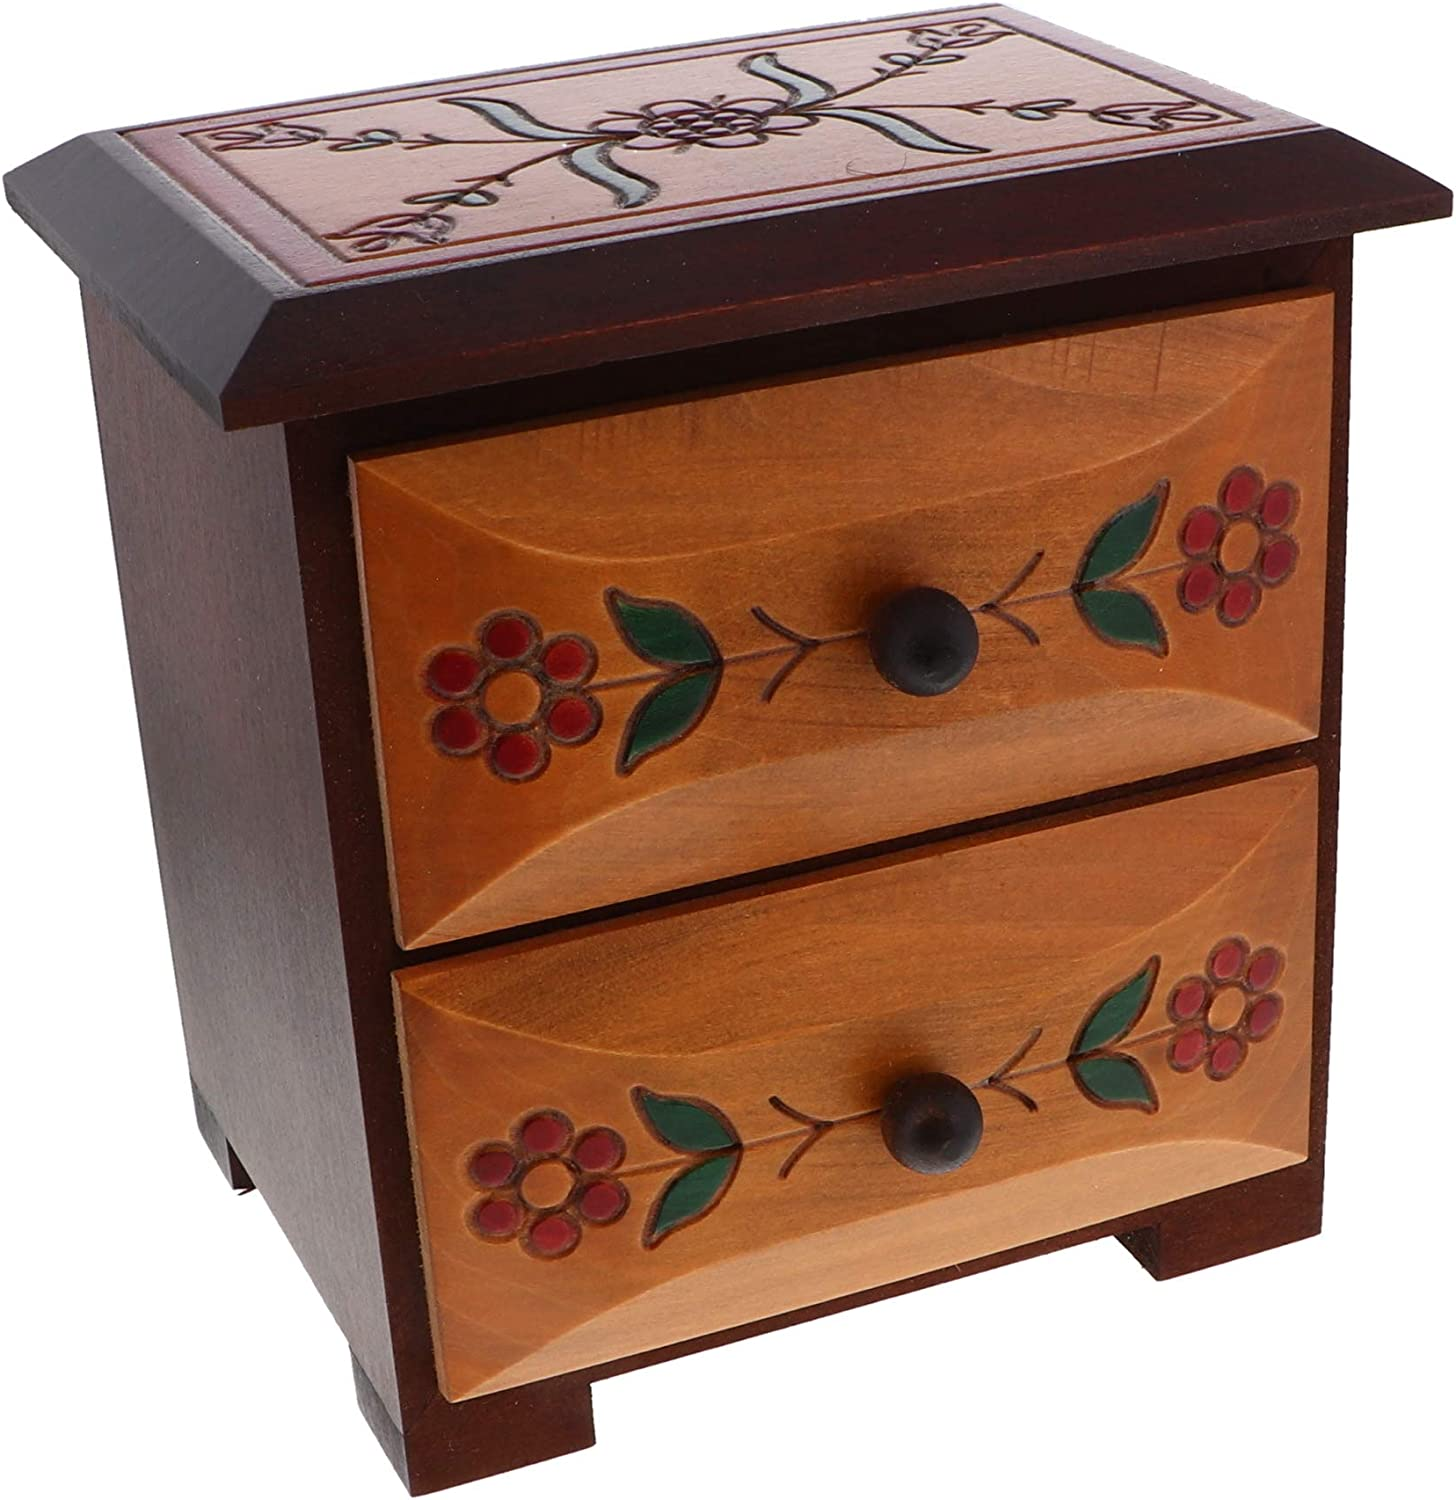 Li'Shay Wooden Chest of Drawers with Carved and Painted Flowers-Brown